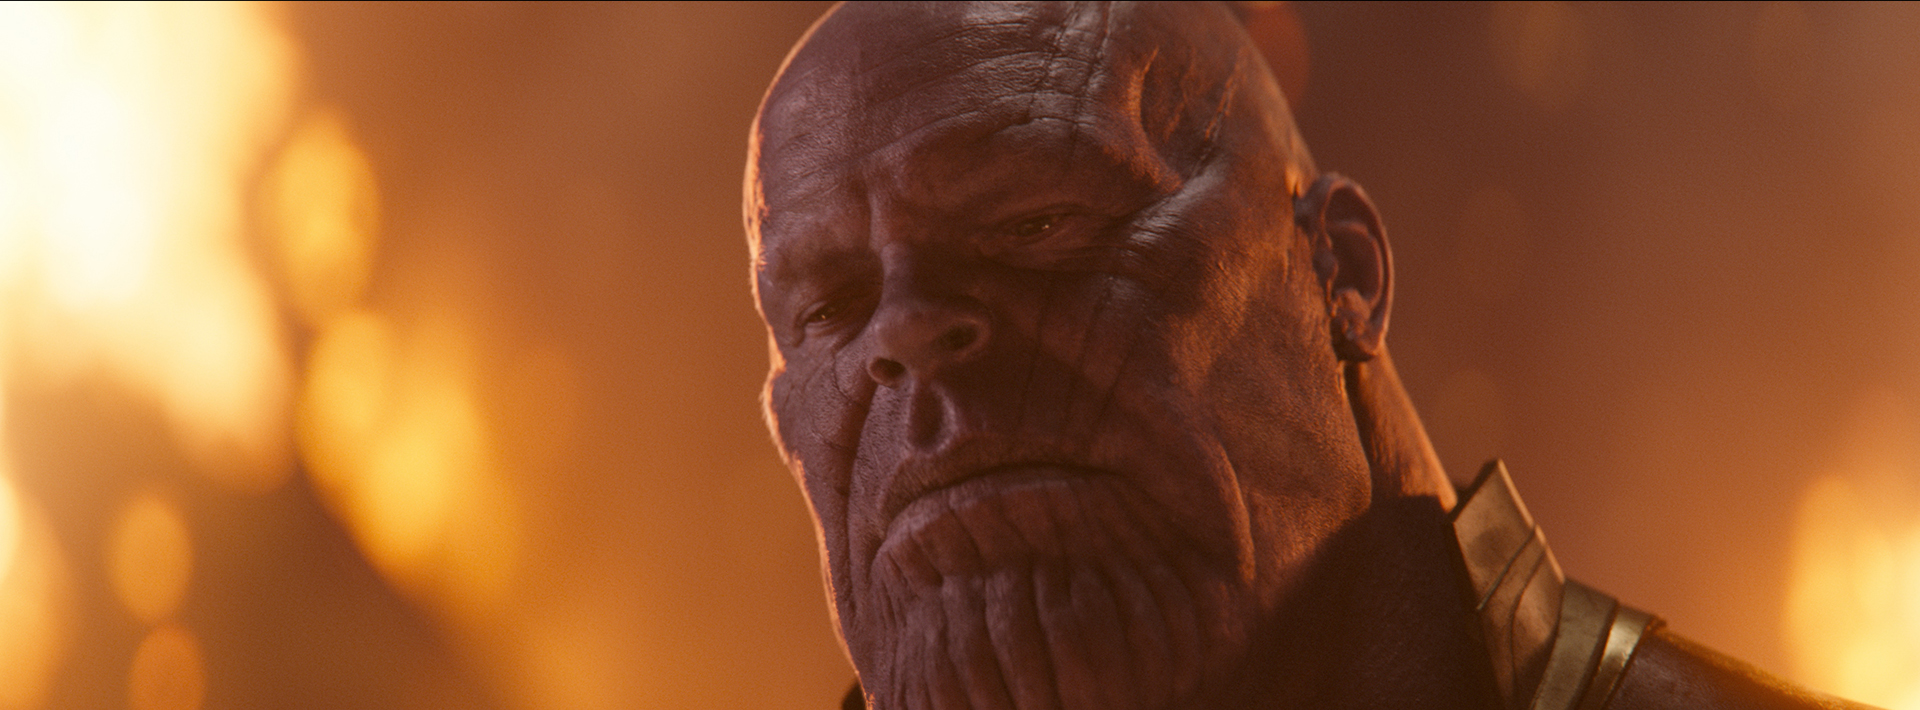 thanos_headFixed.jpg